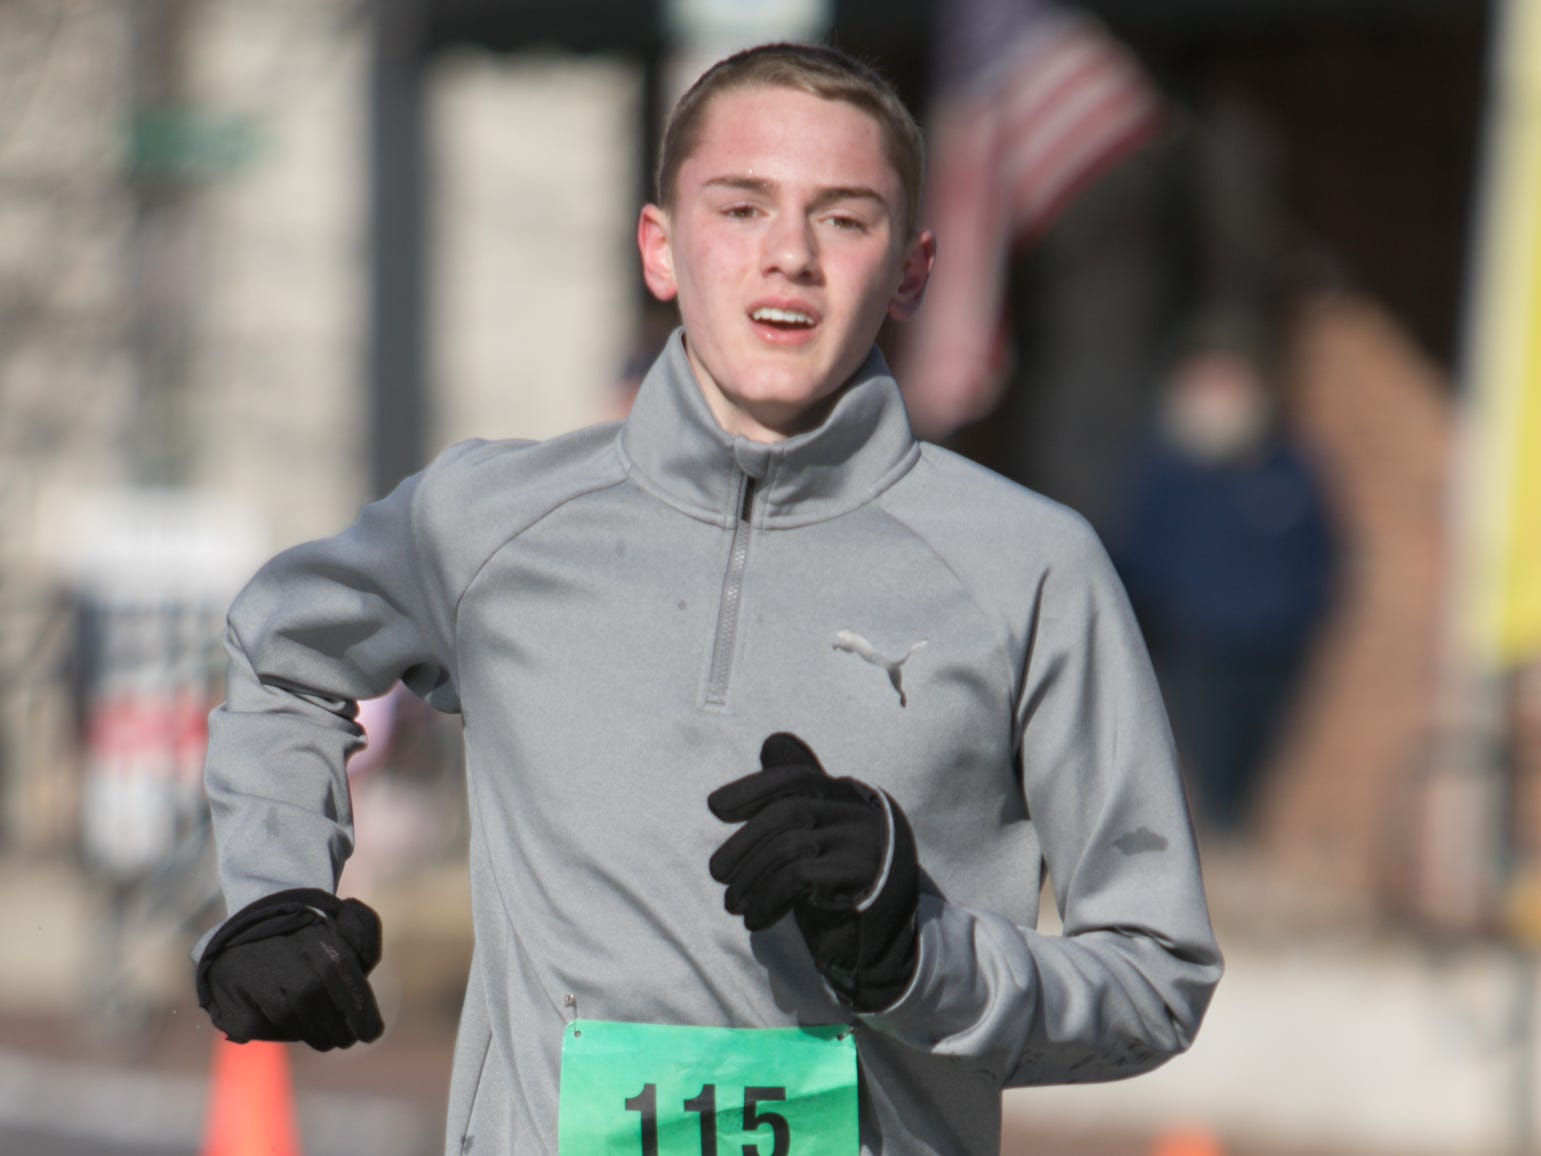 15-year-old Hartland High School freshman Riley Hough was the first overall finisher in the Run for the Gold 5k Saturday, March 16, 2019, with a time of 17 minutes, 3.6 seconds.